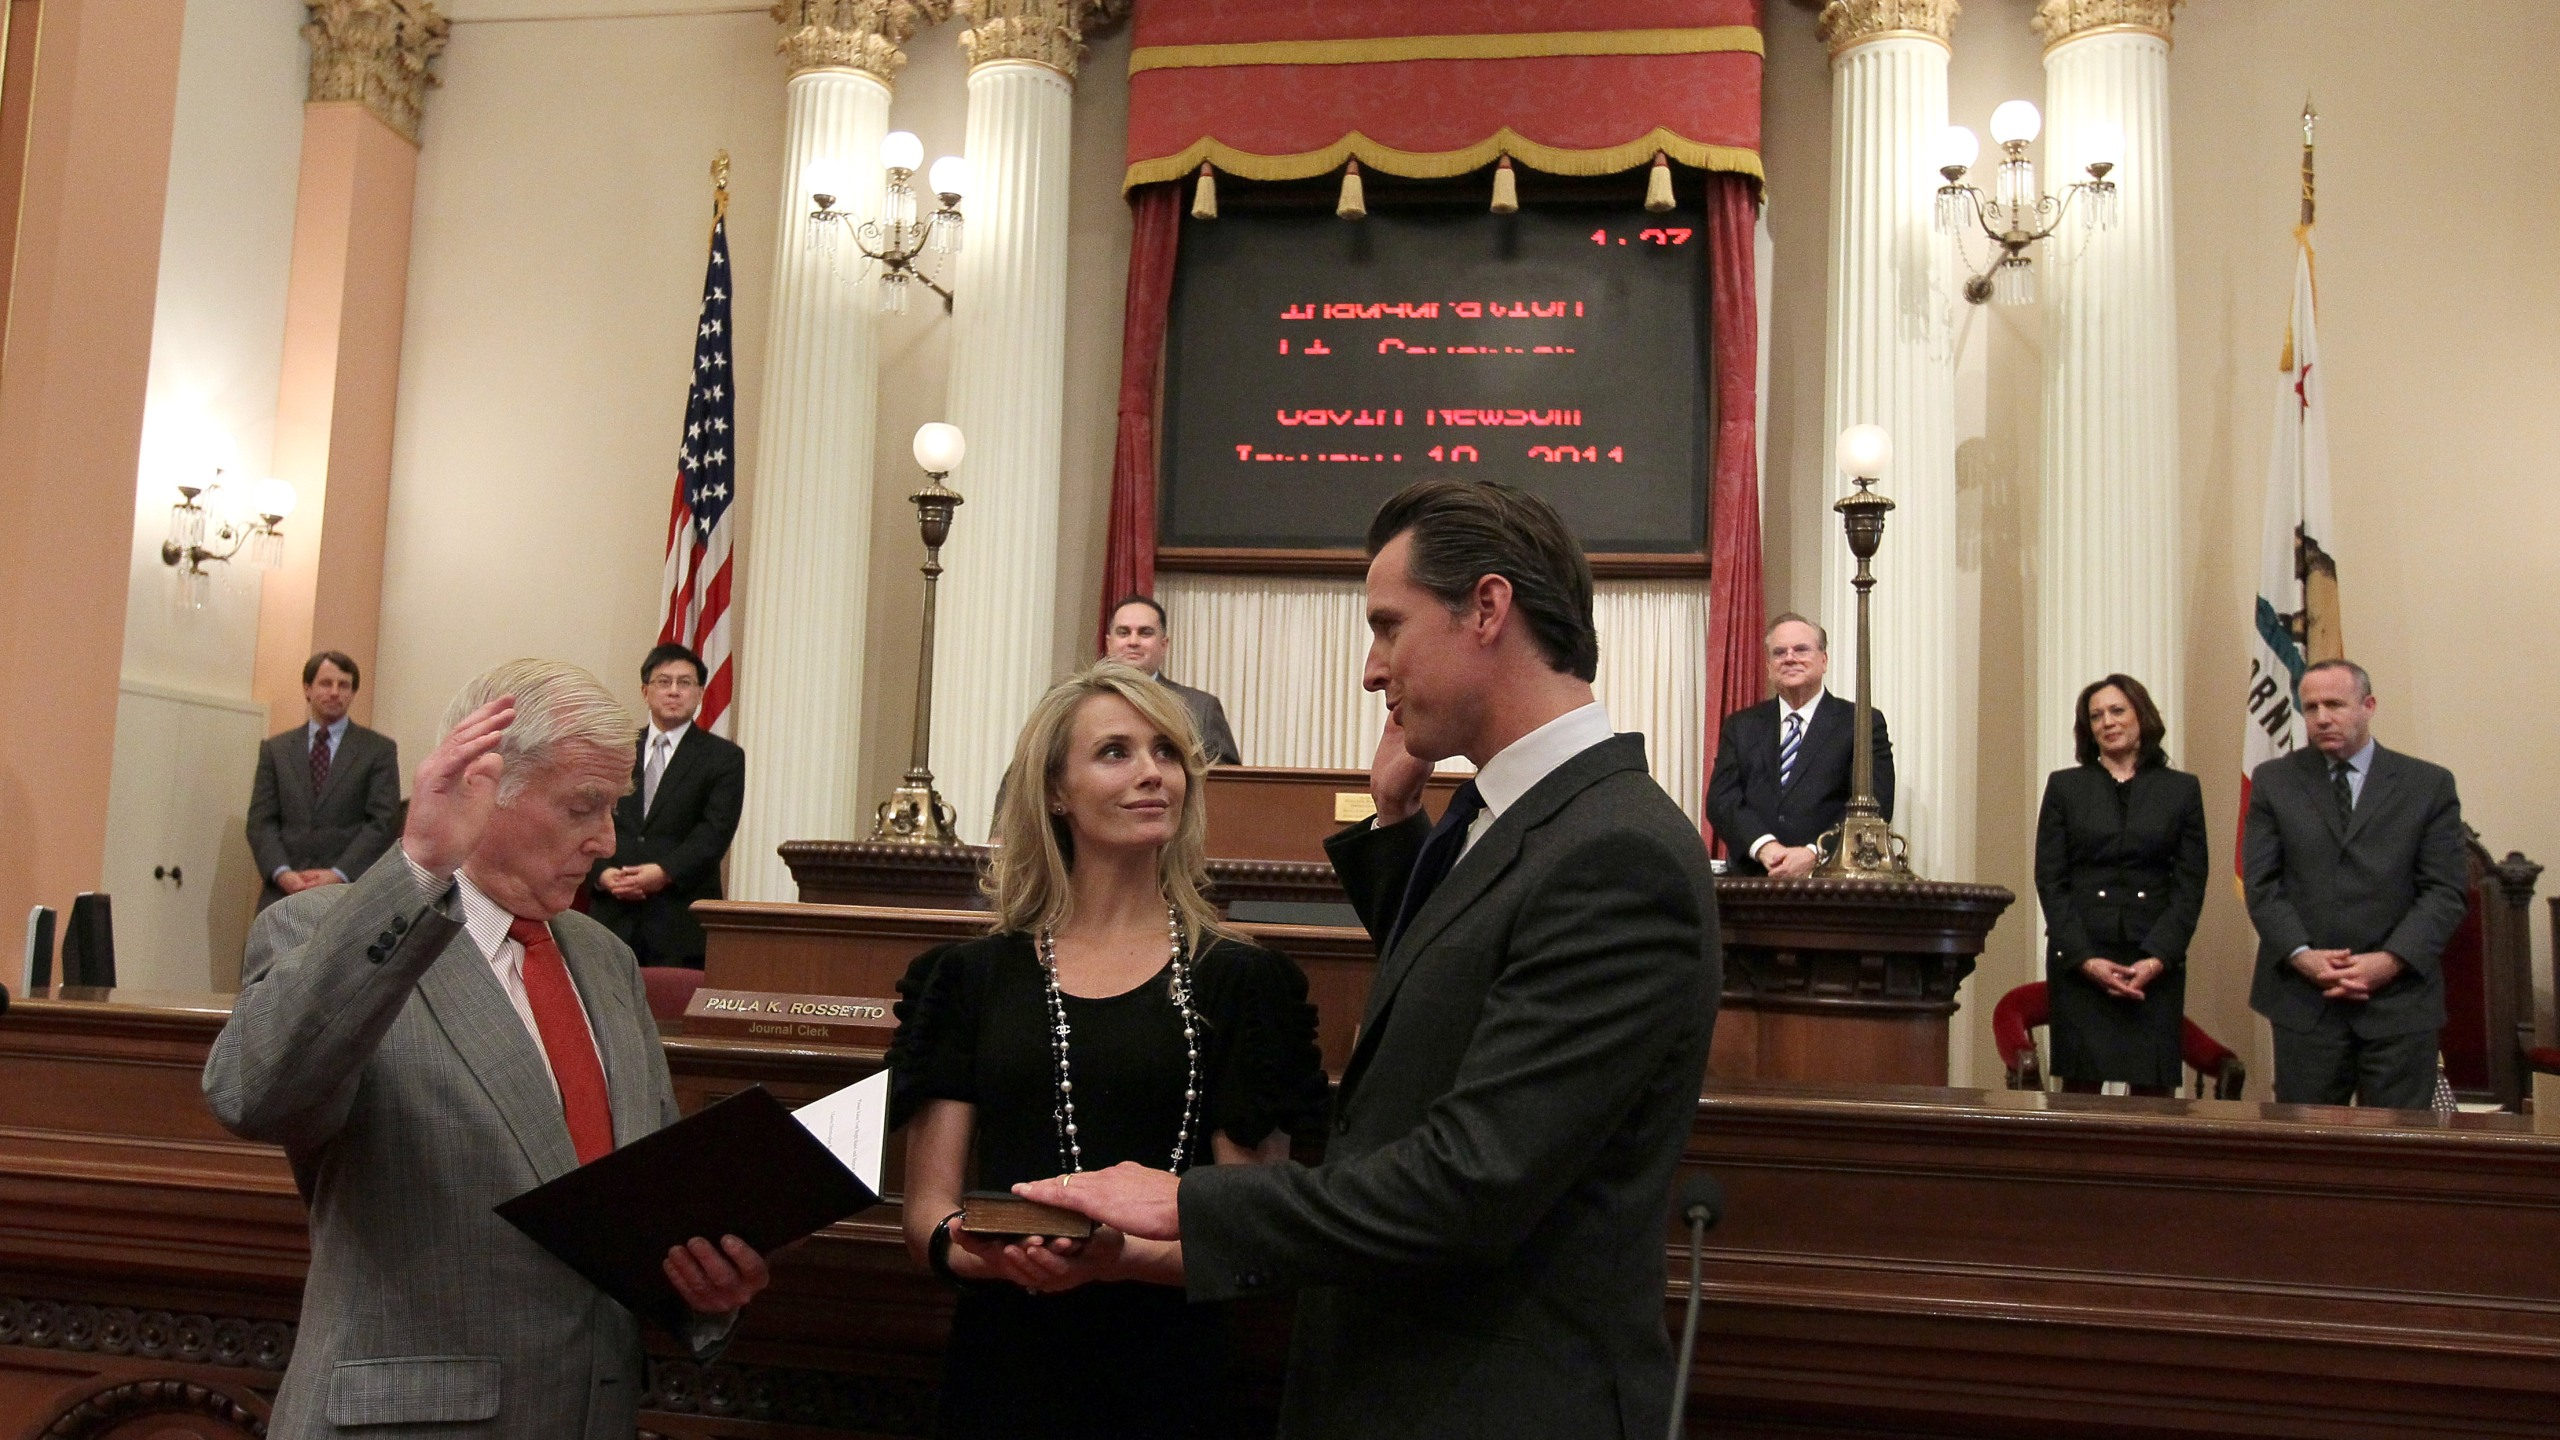 Gavin Newsom, at right, is sworn in as the 49th lieutenant governor of California by his father William A. Newsom, left, as Gavin's wife Jennifer Siebel-Newsom, center, looks on at the California State Capitol in Sacramento on Jan. 10, 2011. (Credit: Justin Sullivan / Getty Images)